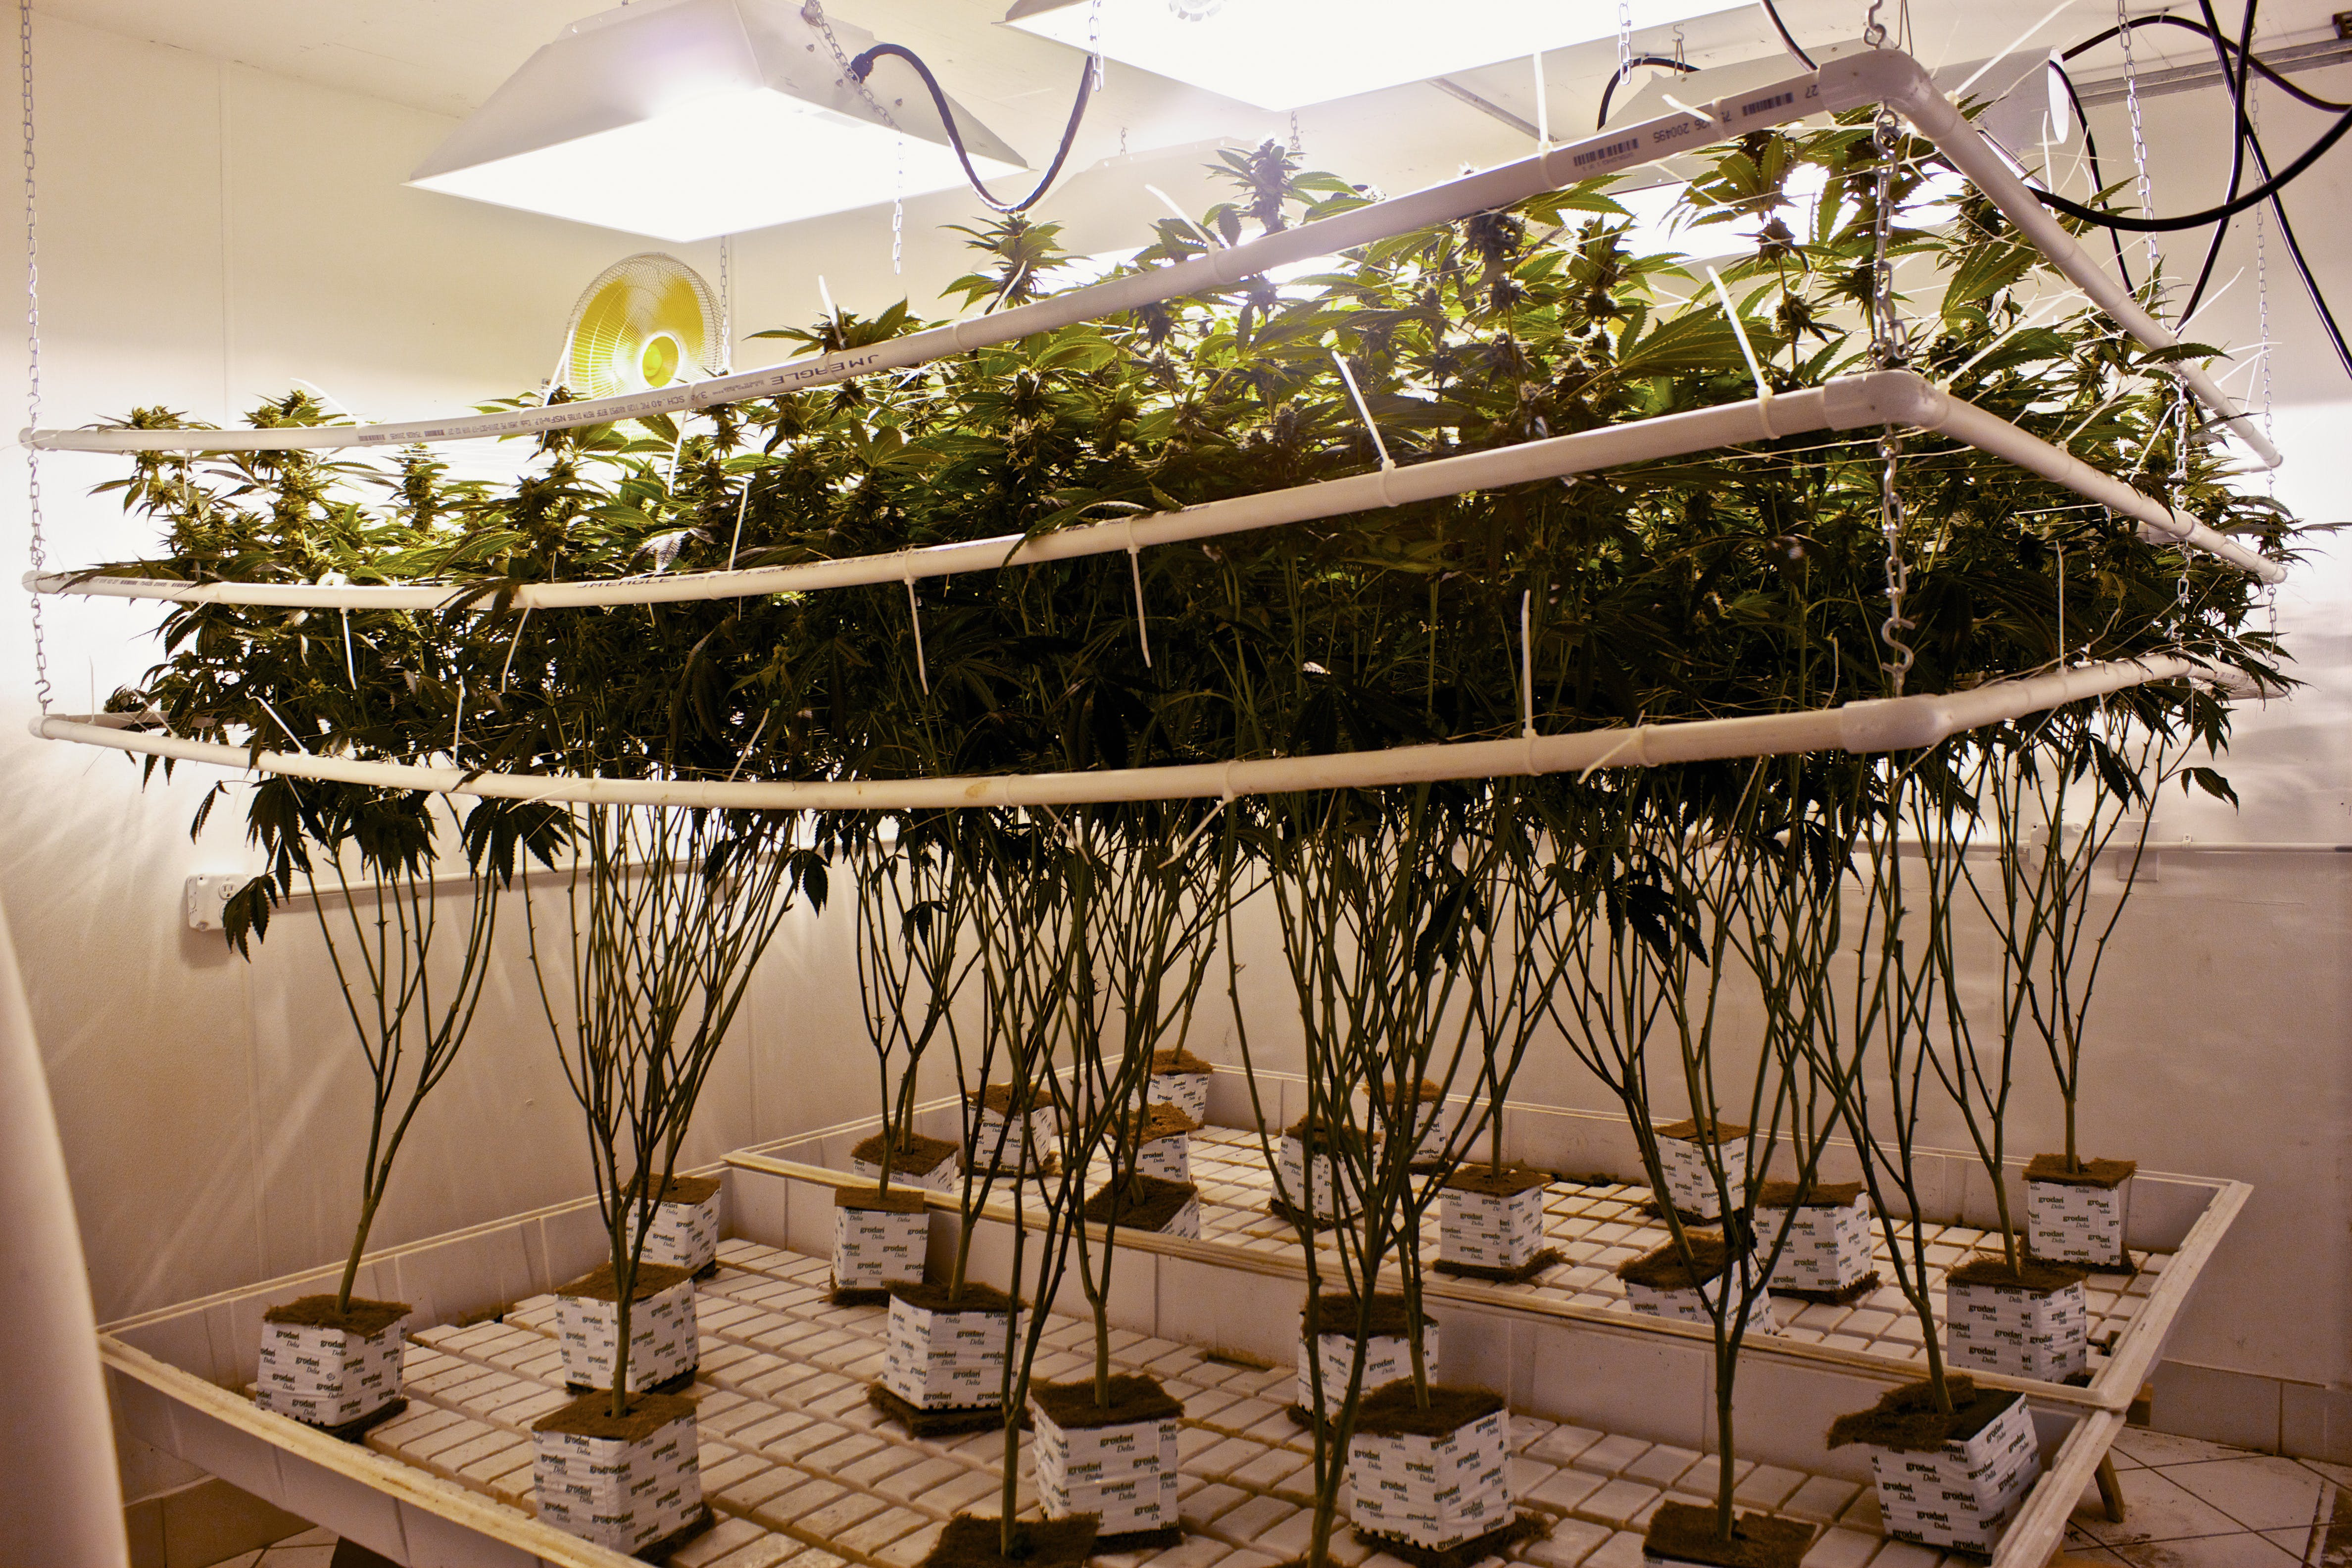 What is Hydroponic Weed? Here, a hydroponic system is shown